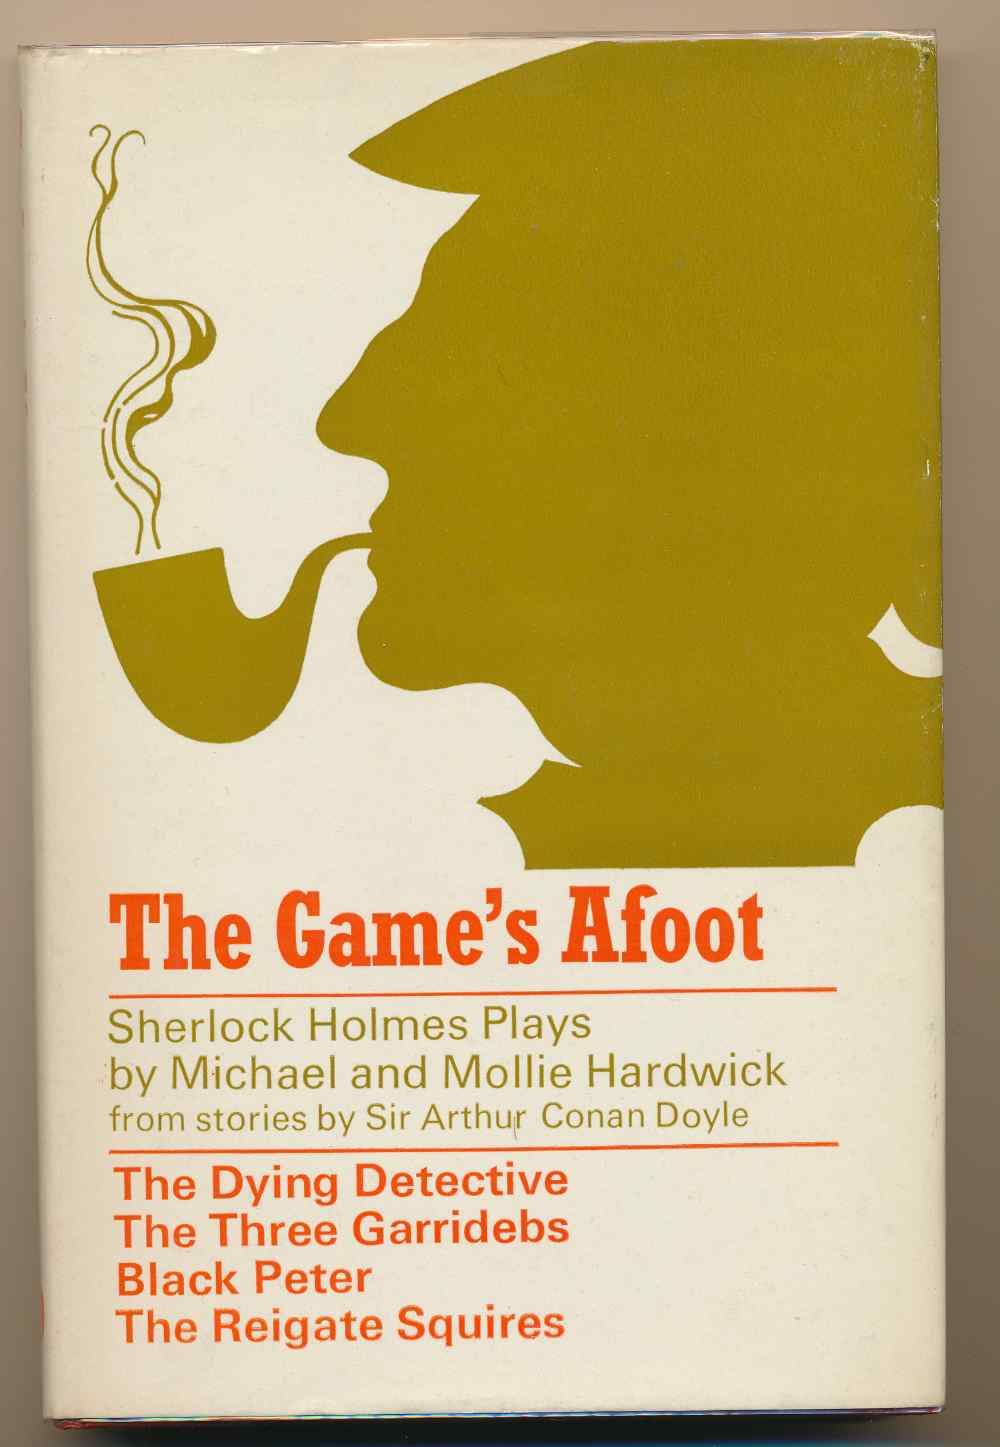 The game's afoot : Sherlock Holmes plays